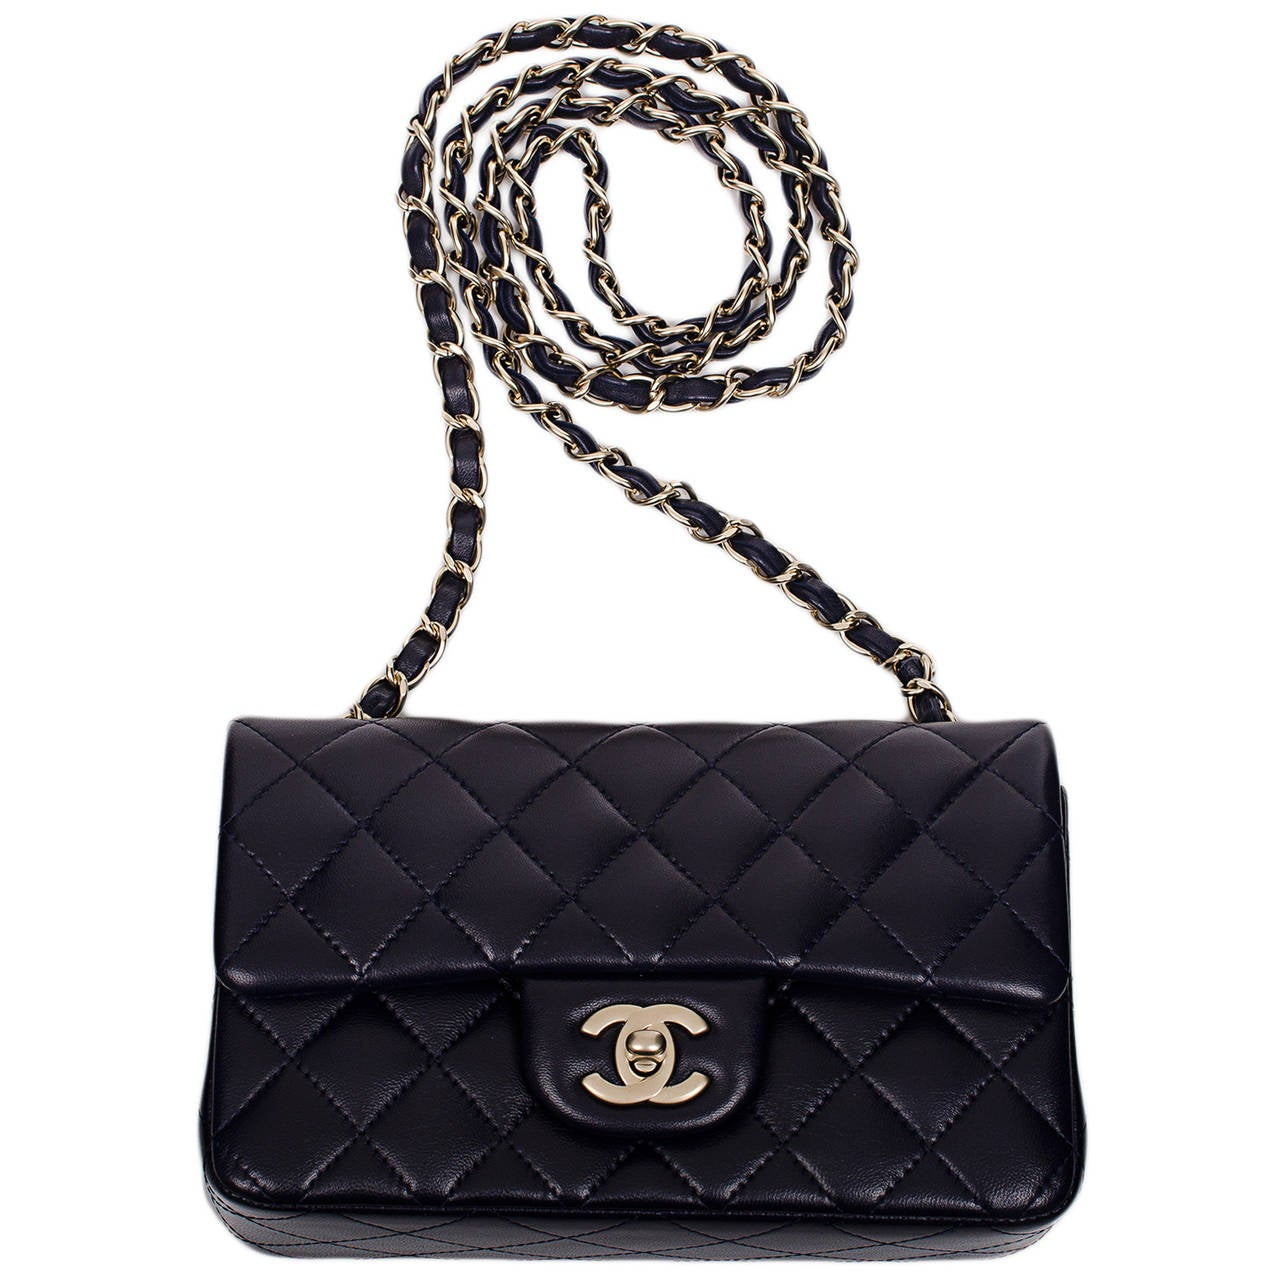 9a8bc15e7265 Chanel Classic Small Flap Wallet Lambskin | Stanford Center for ...